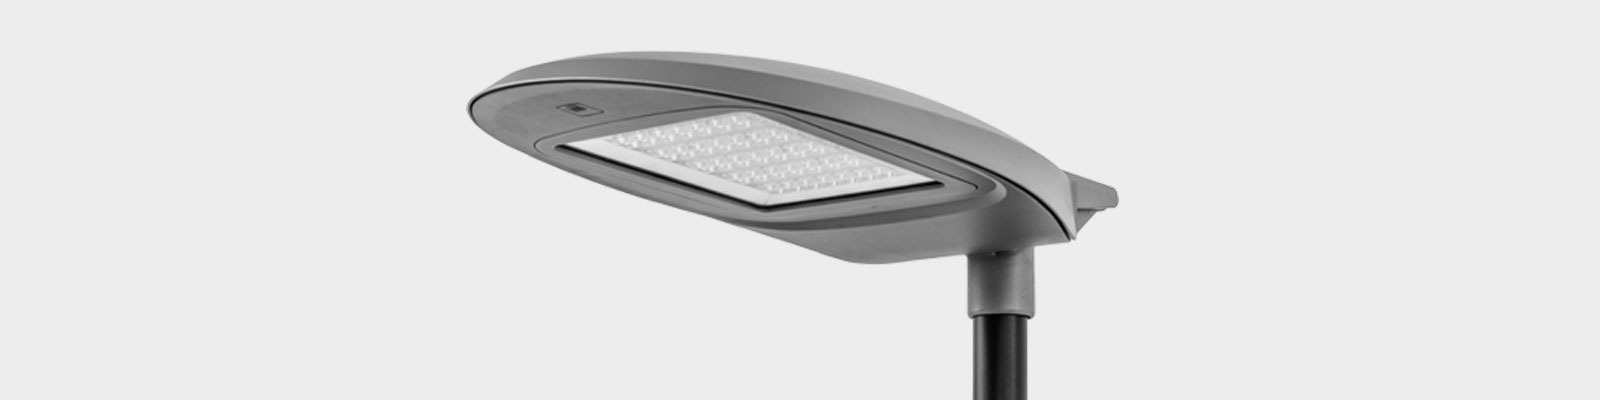 alaxll luminaire led agil xl novatilu